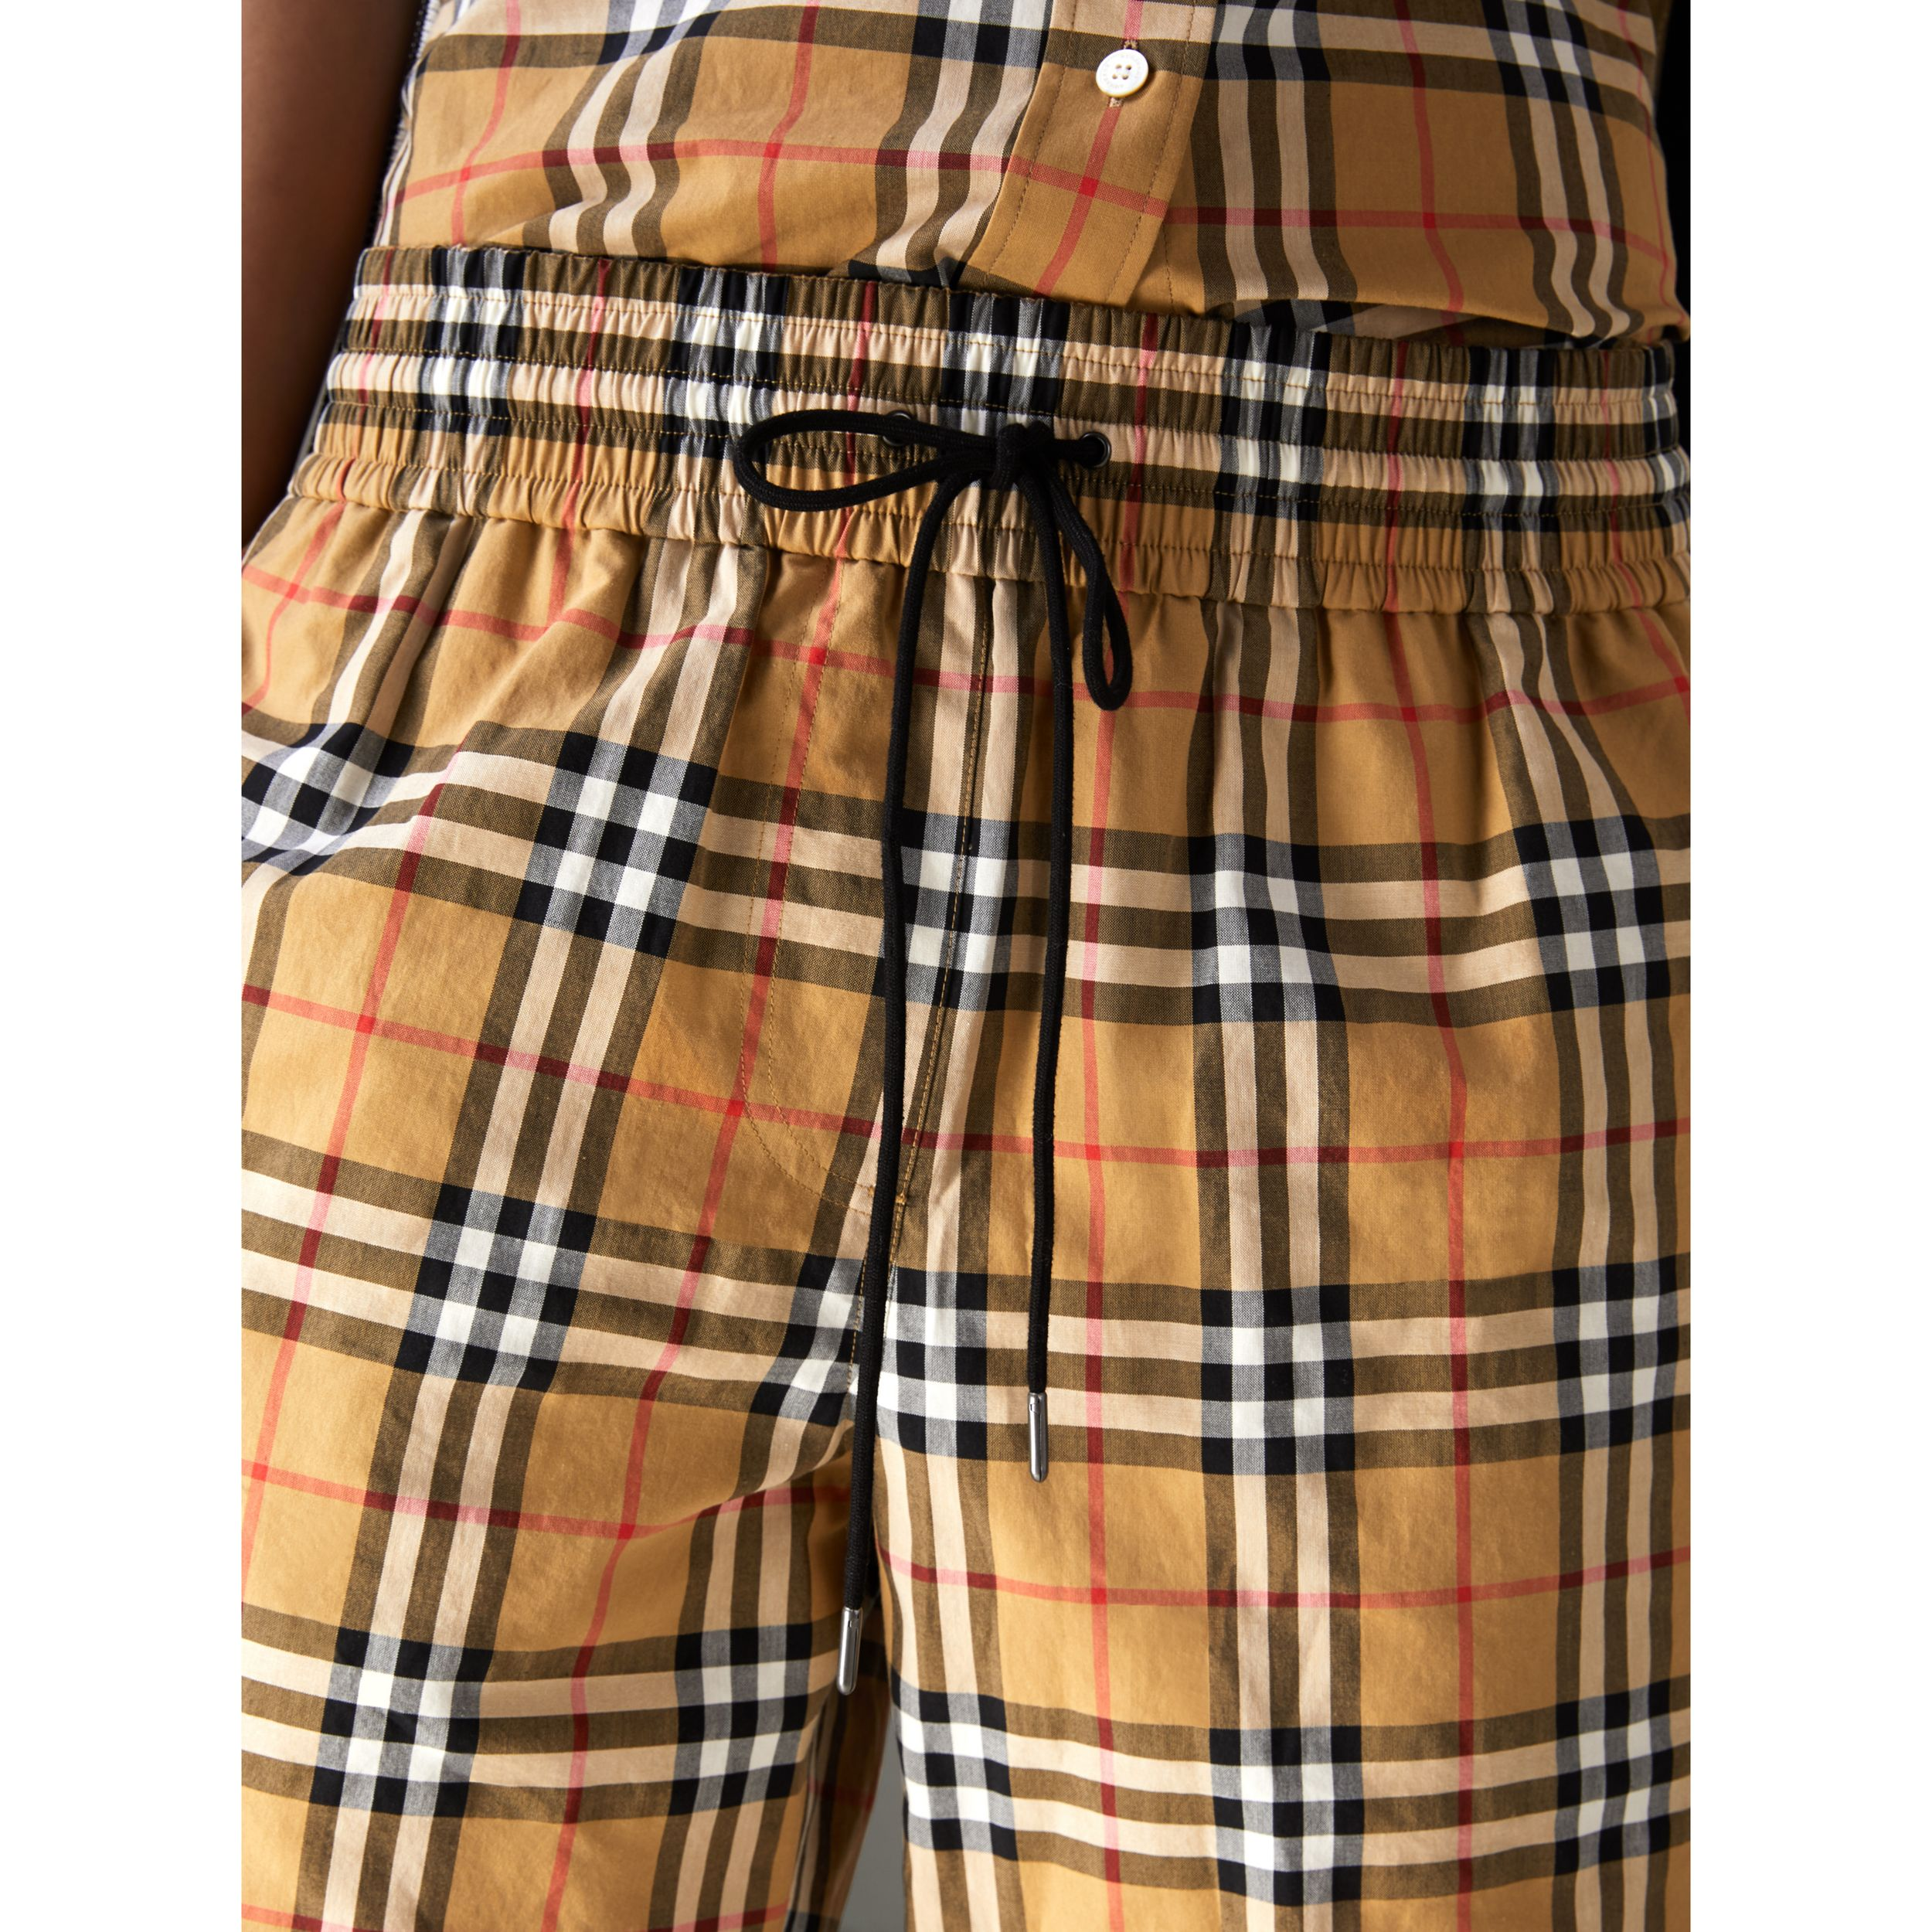 Vintage Check Drawstring Shorts in Antique Yellow - Women | Burberry - 2